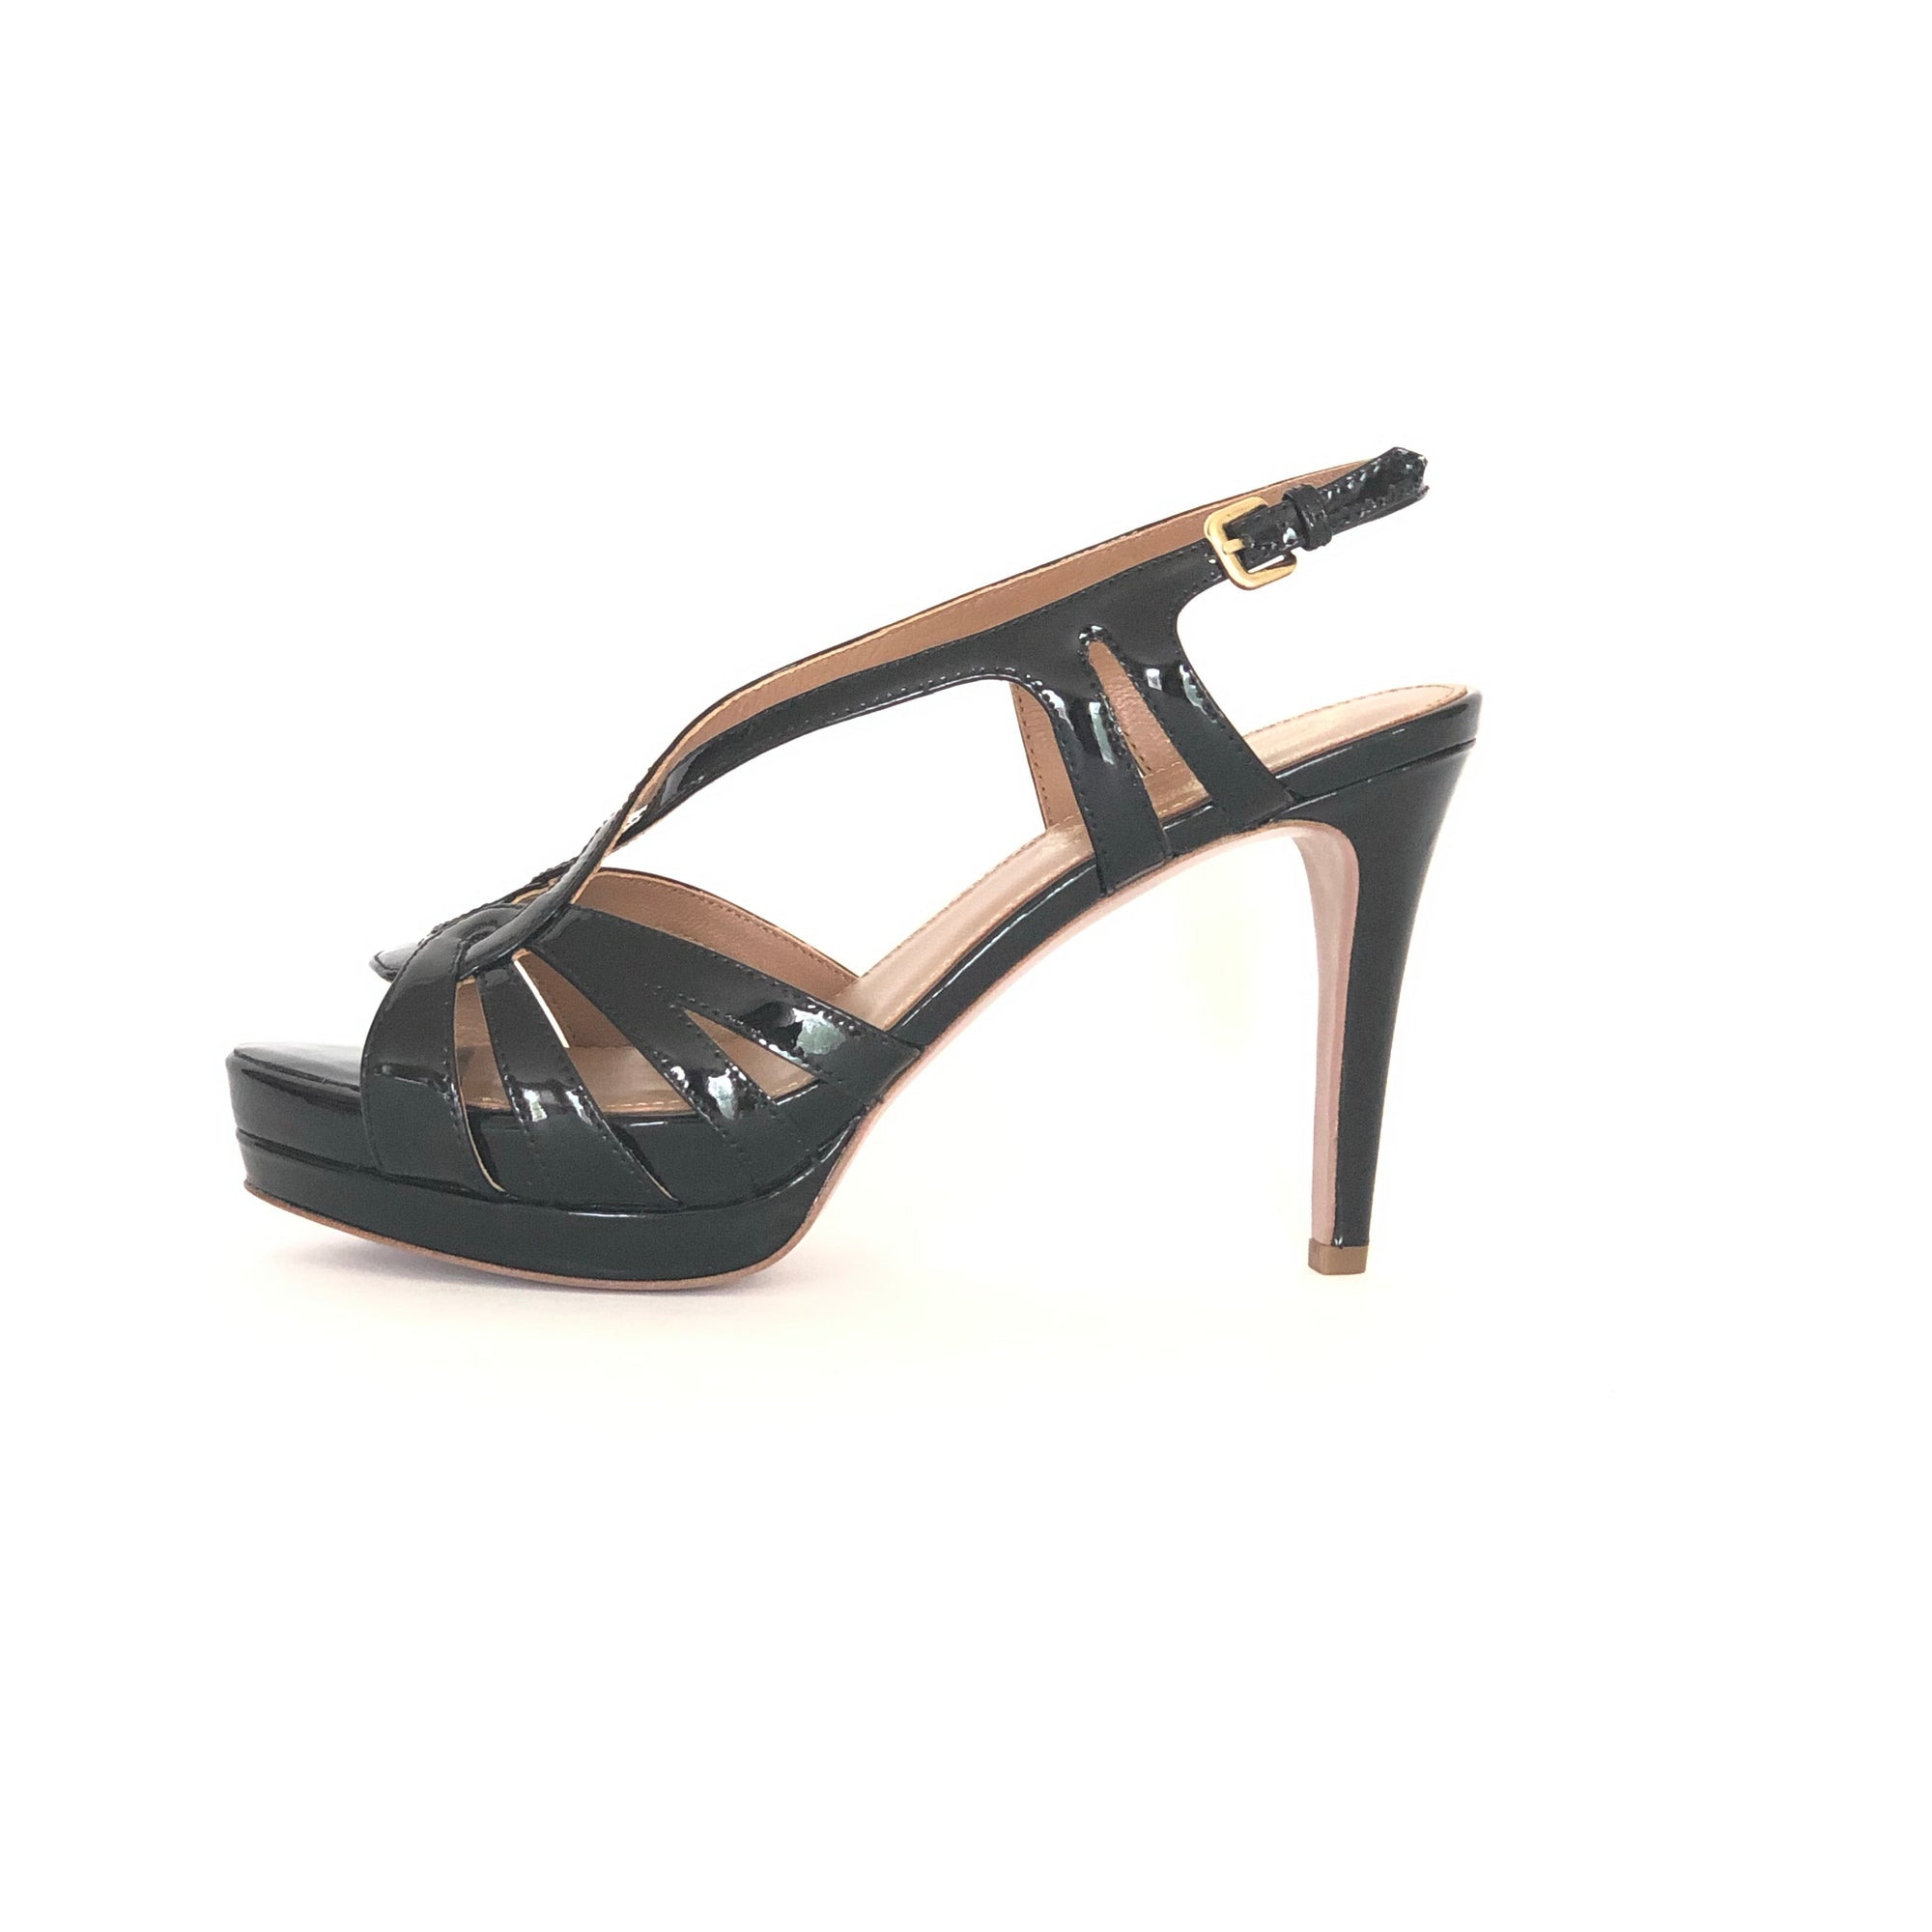 ladiesoflux - Elie Tahari Chaplin Sand Platform Sandal Black, Size 7 - Ladies Of Lux - Shoes